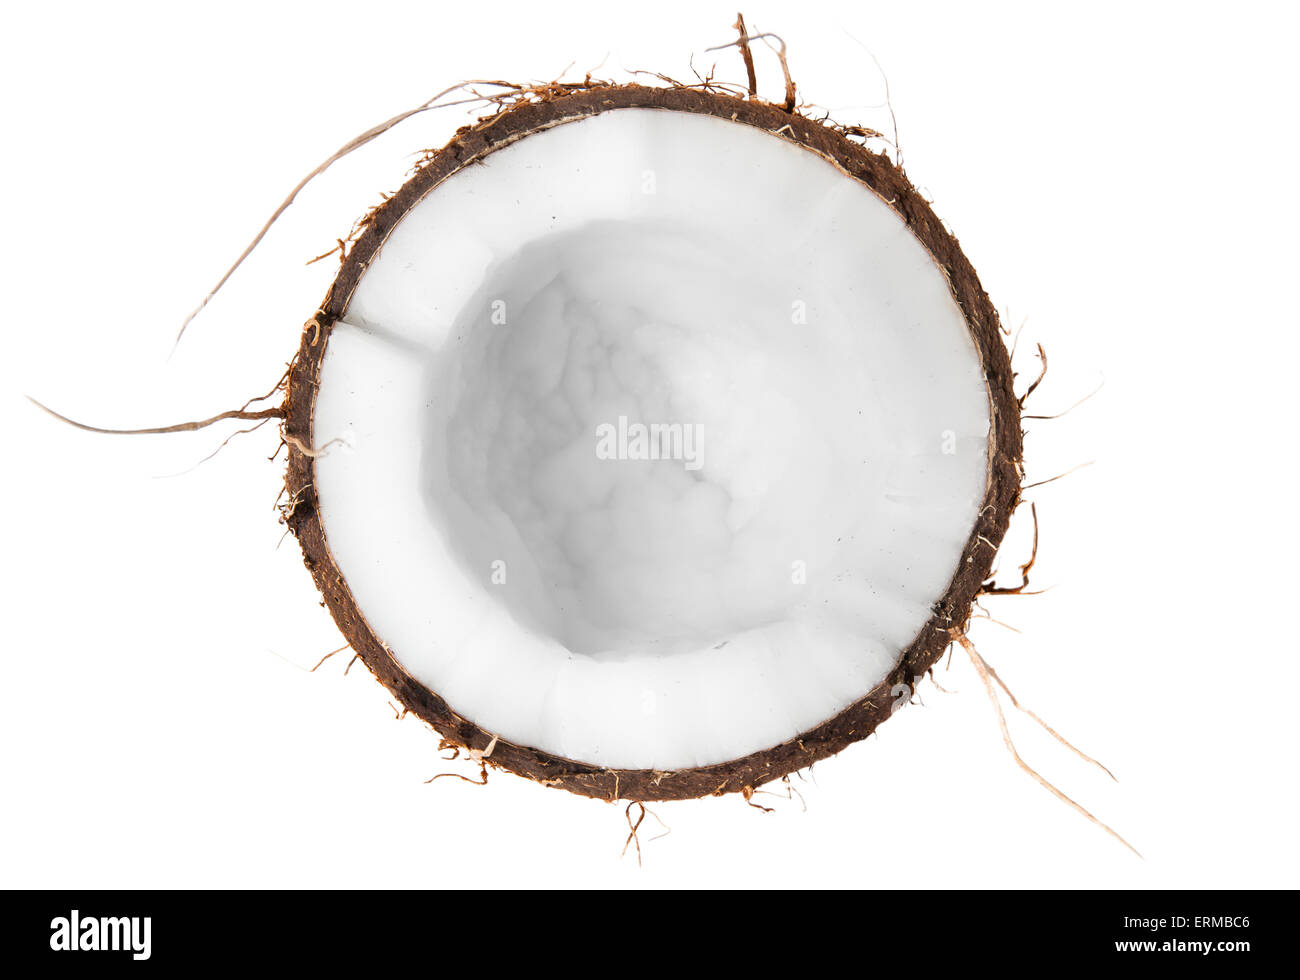 Half of coconut top view isolated on white background - Stock Image